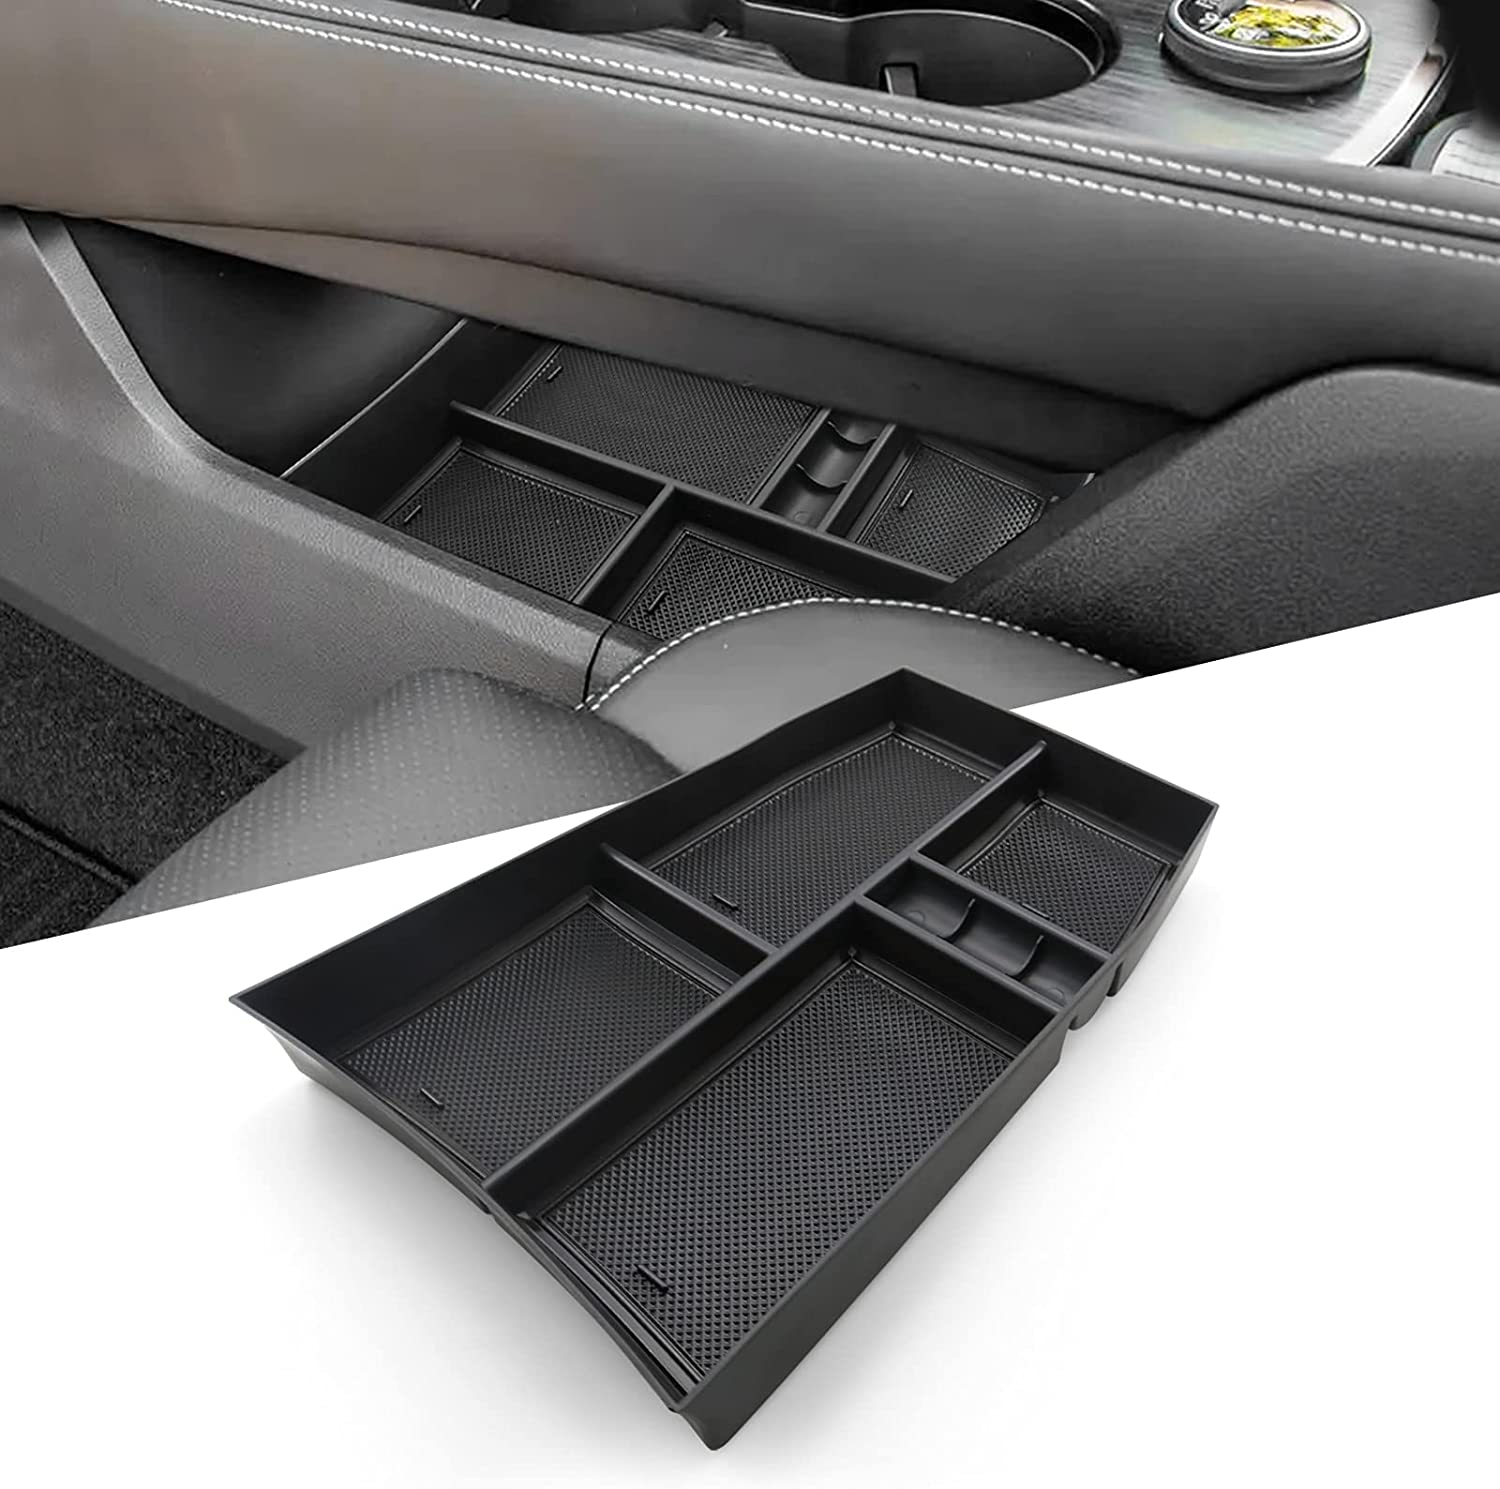 LFOTPP Center Console Organizer for 2021 Nissan Ar T33 Car Our shop most popular Free Shipping Cheap Bargain Gift Rogue